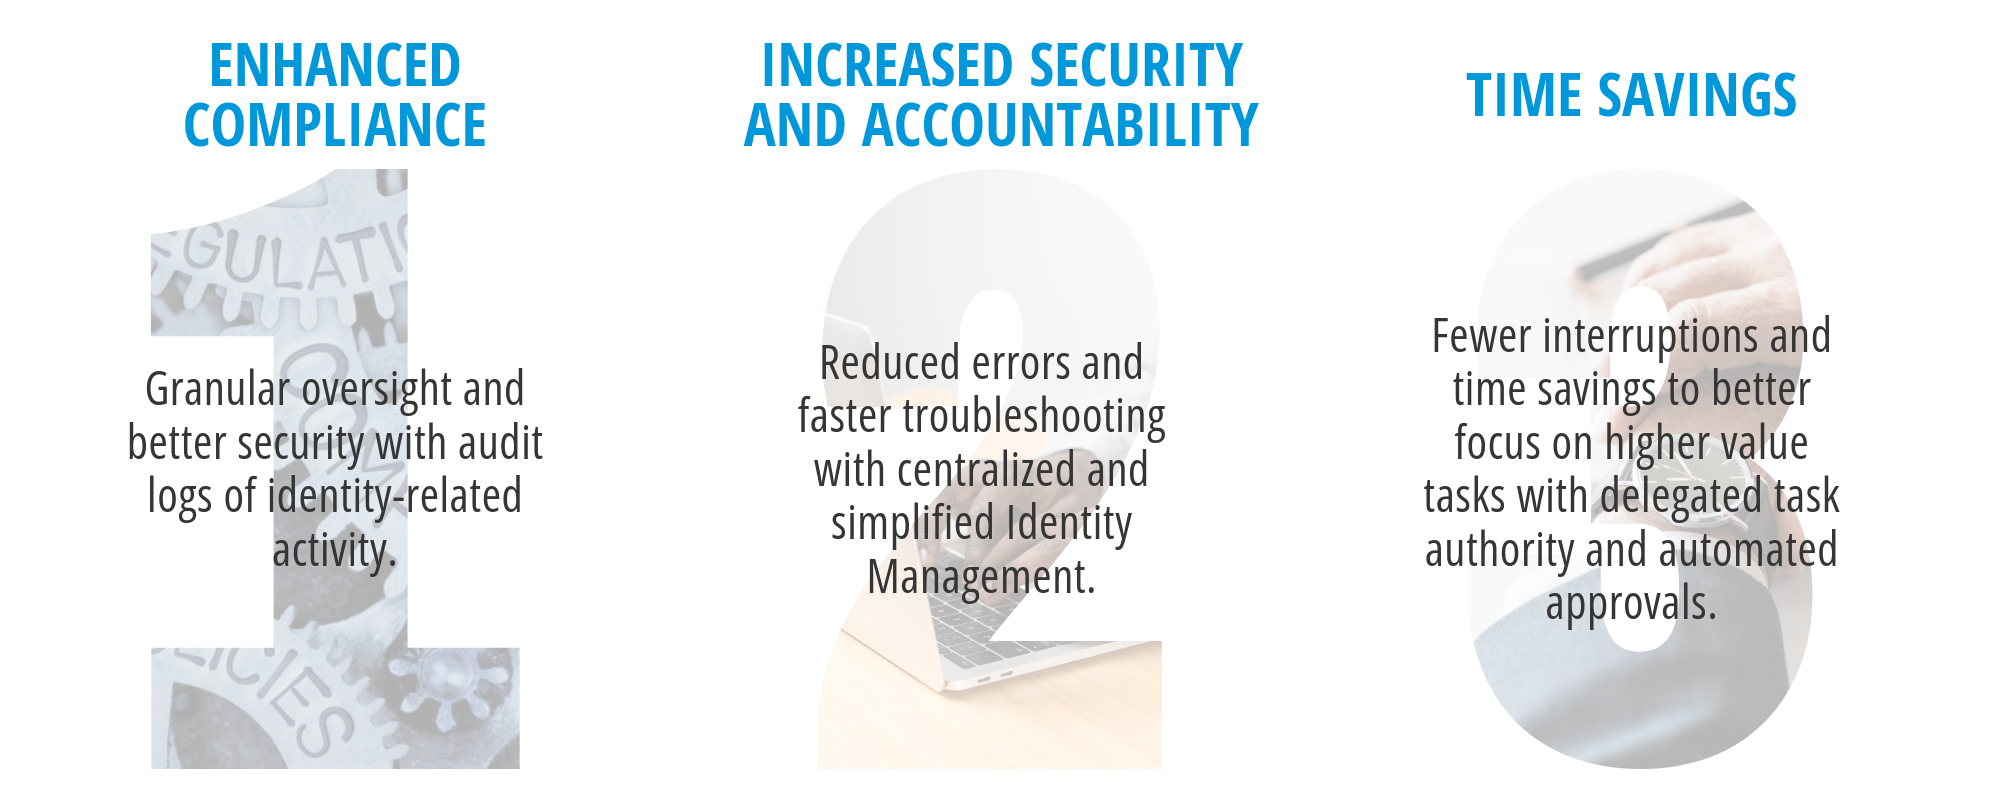 Security & Compliance Manager   Why Identity Maestro